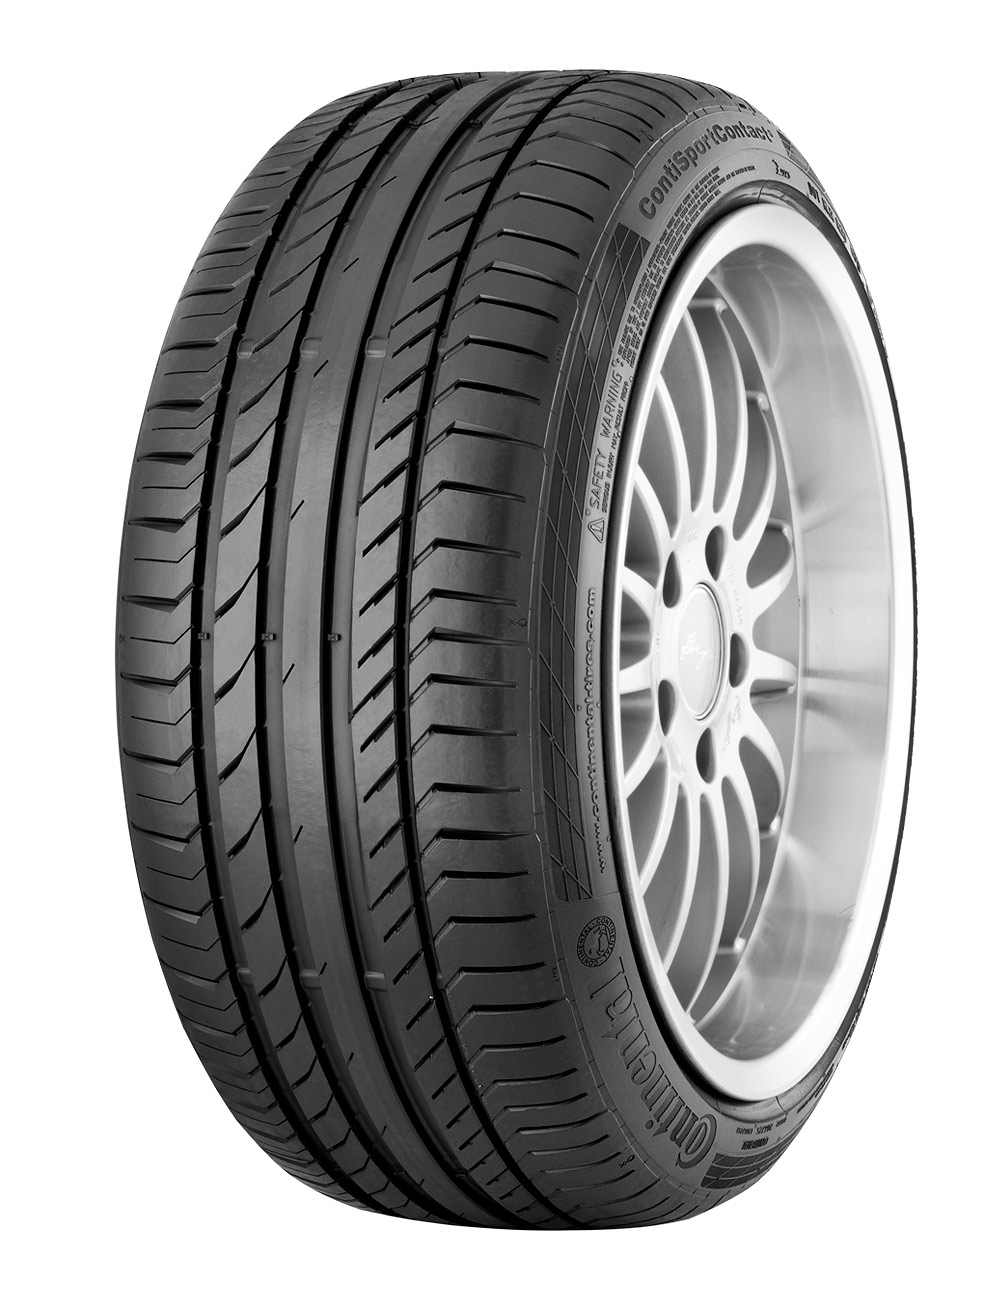 Gomme Autovettura Continental 225/45 R19 96W SP.CONTACT 5 XL Estivo